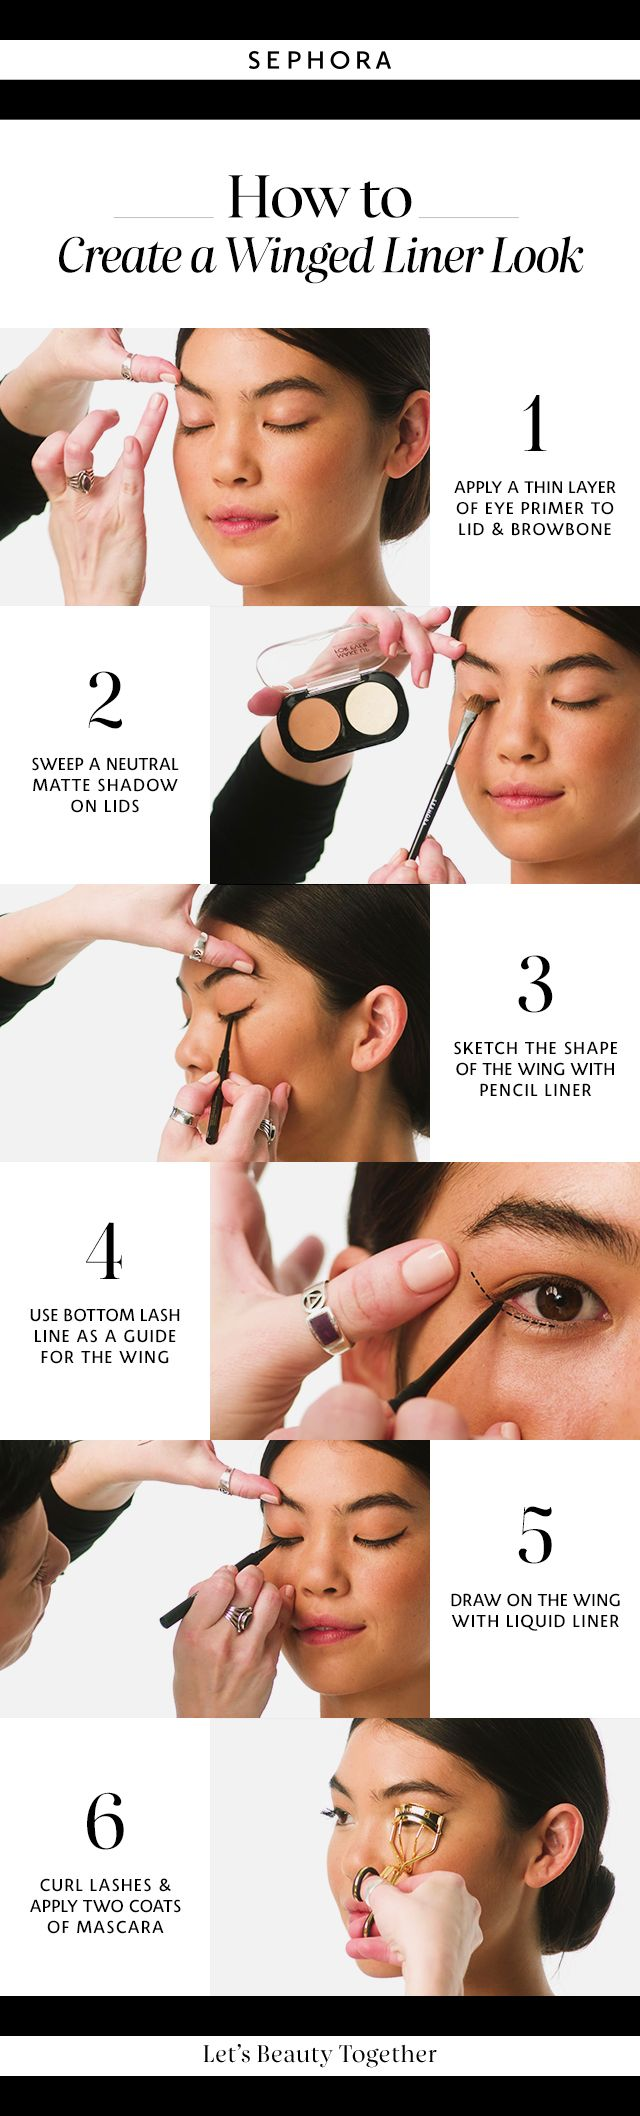 Learn how to create a winged liner look. Want more details? Click the image to watch a full tutorial on our YouTube channel. #Sephora